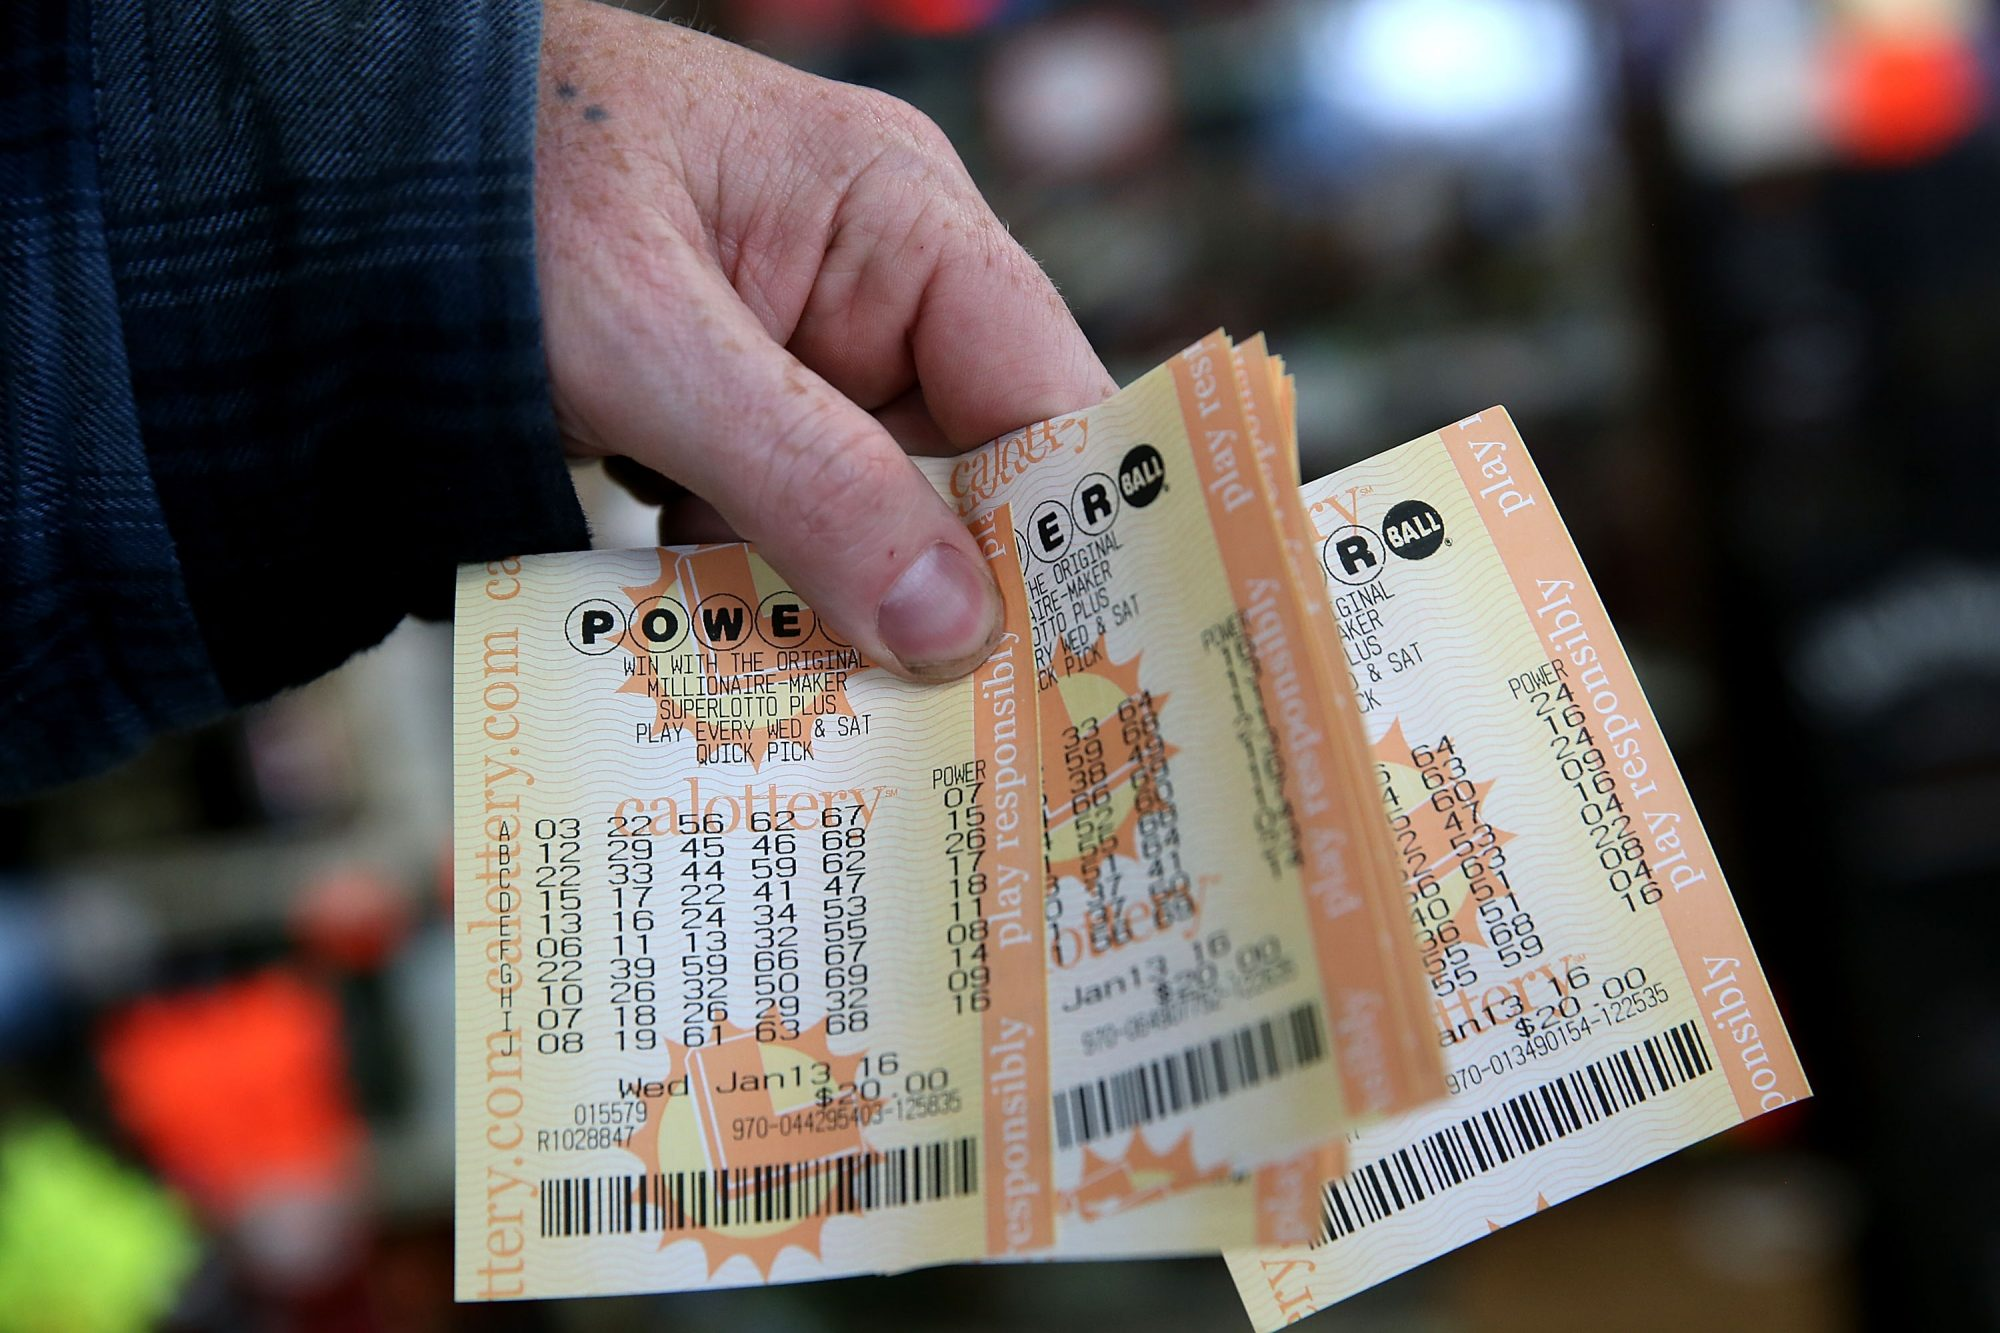 hand holding several Powerball lottery tickets